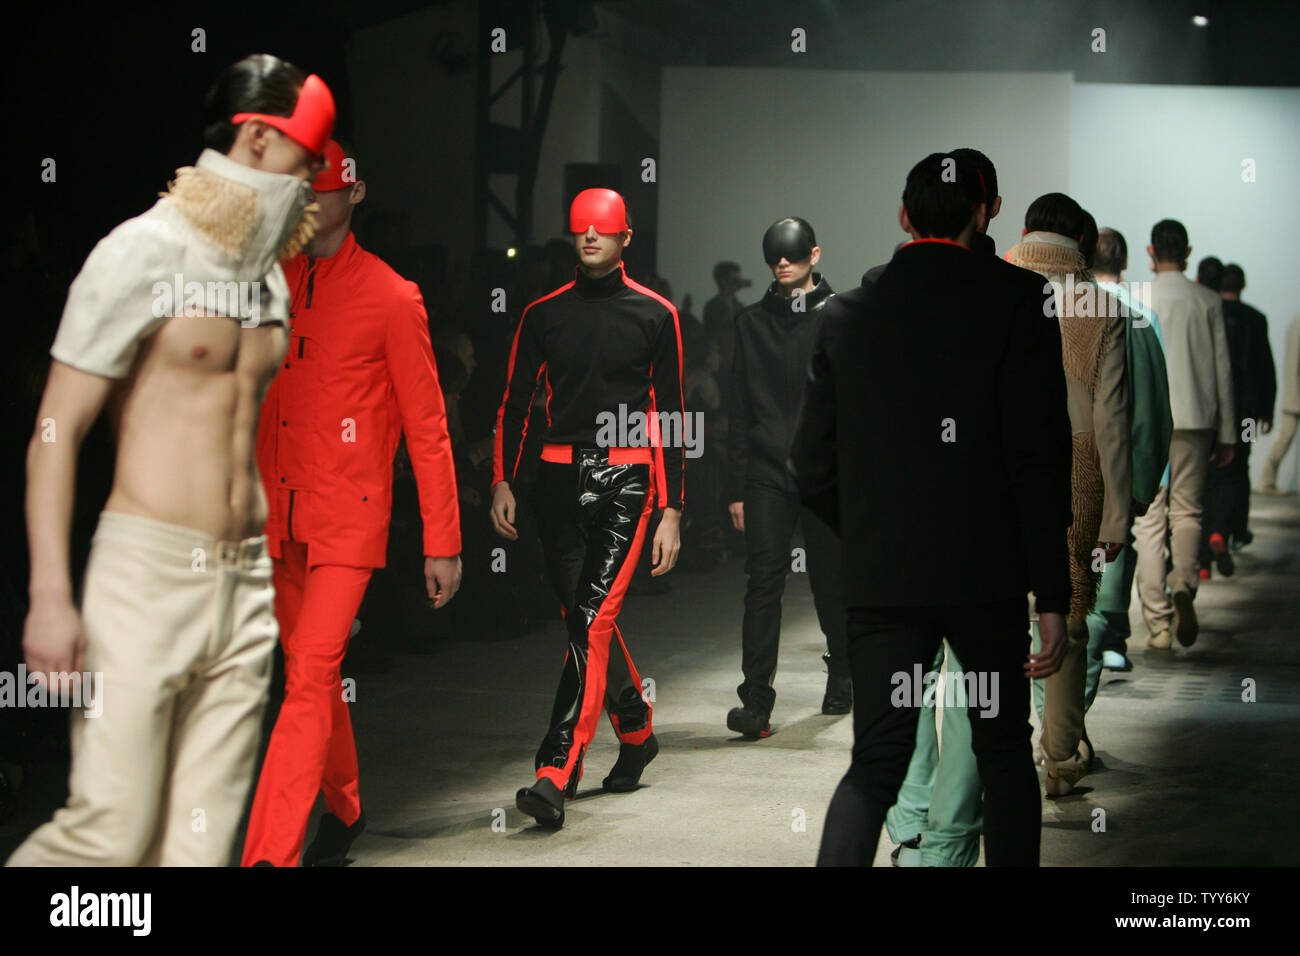 Models Wear Outfits By French Fashion Designer Romain Kremer At The End Of His Men High Fashion Collection Presentations In Paris January 24 2010 Upi Eco Clement Stock Photo Alamy